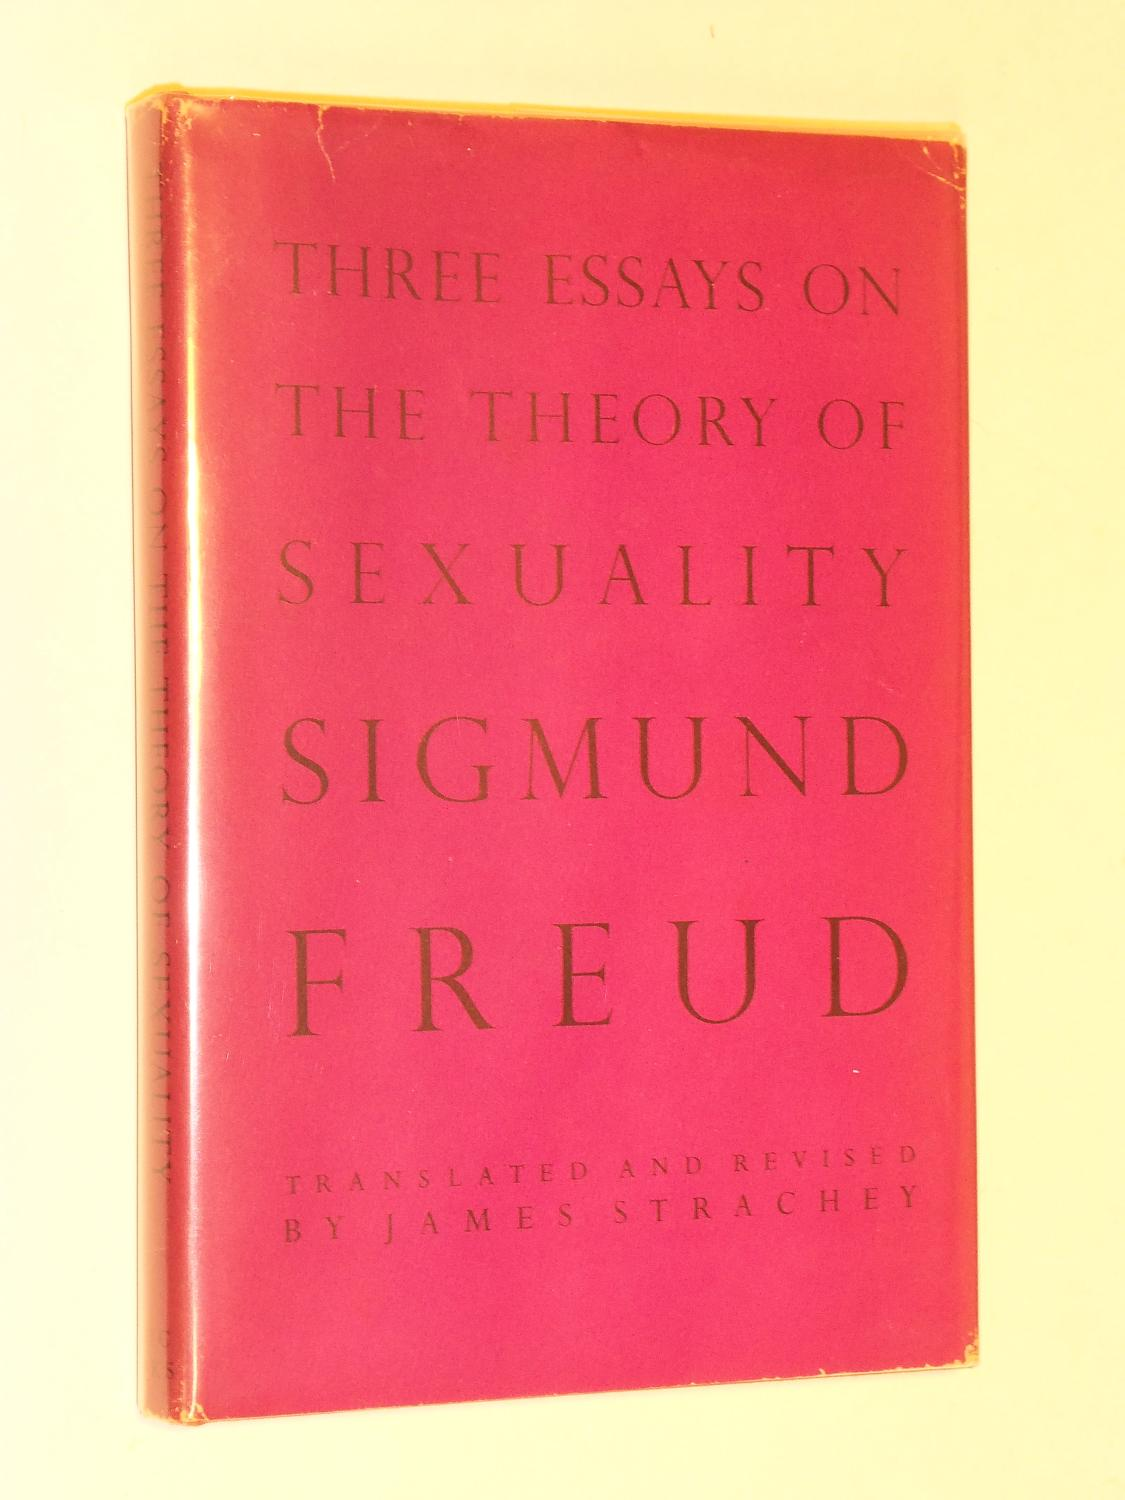 three essays on the theory of sexuality freud sigmund first three essays on the theory of sexuality freud sigmund first edition